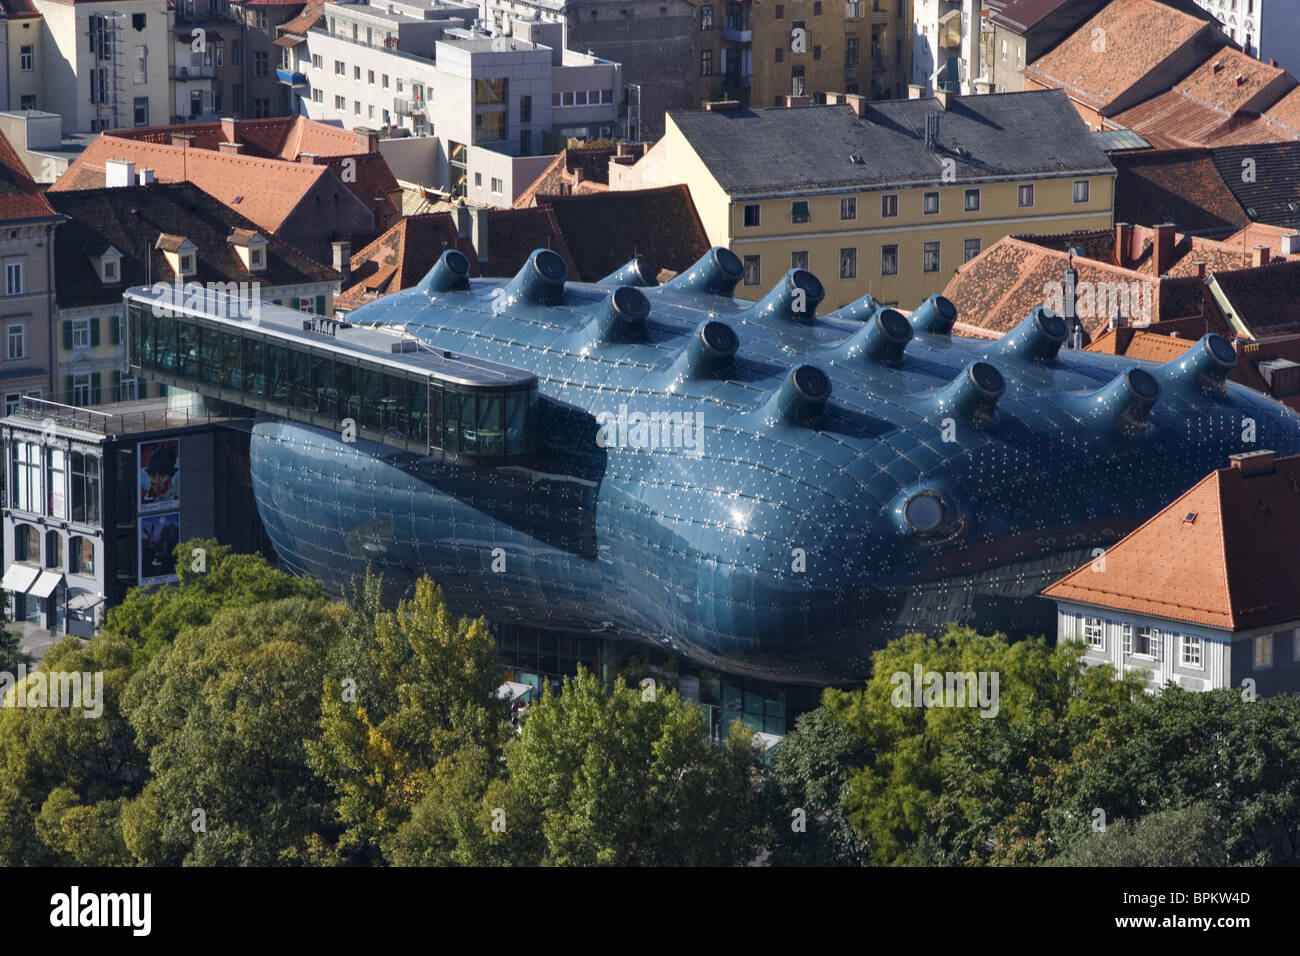 Kunsthaus, aka the Friendly Alien, blob architecture by Peter Cook and Colin Fournier, Museum of contemporary Art, - Stock Image